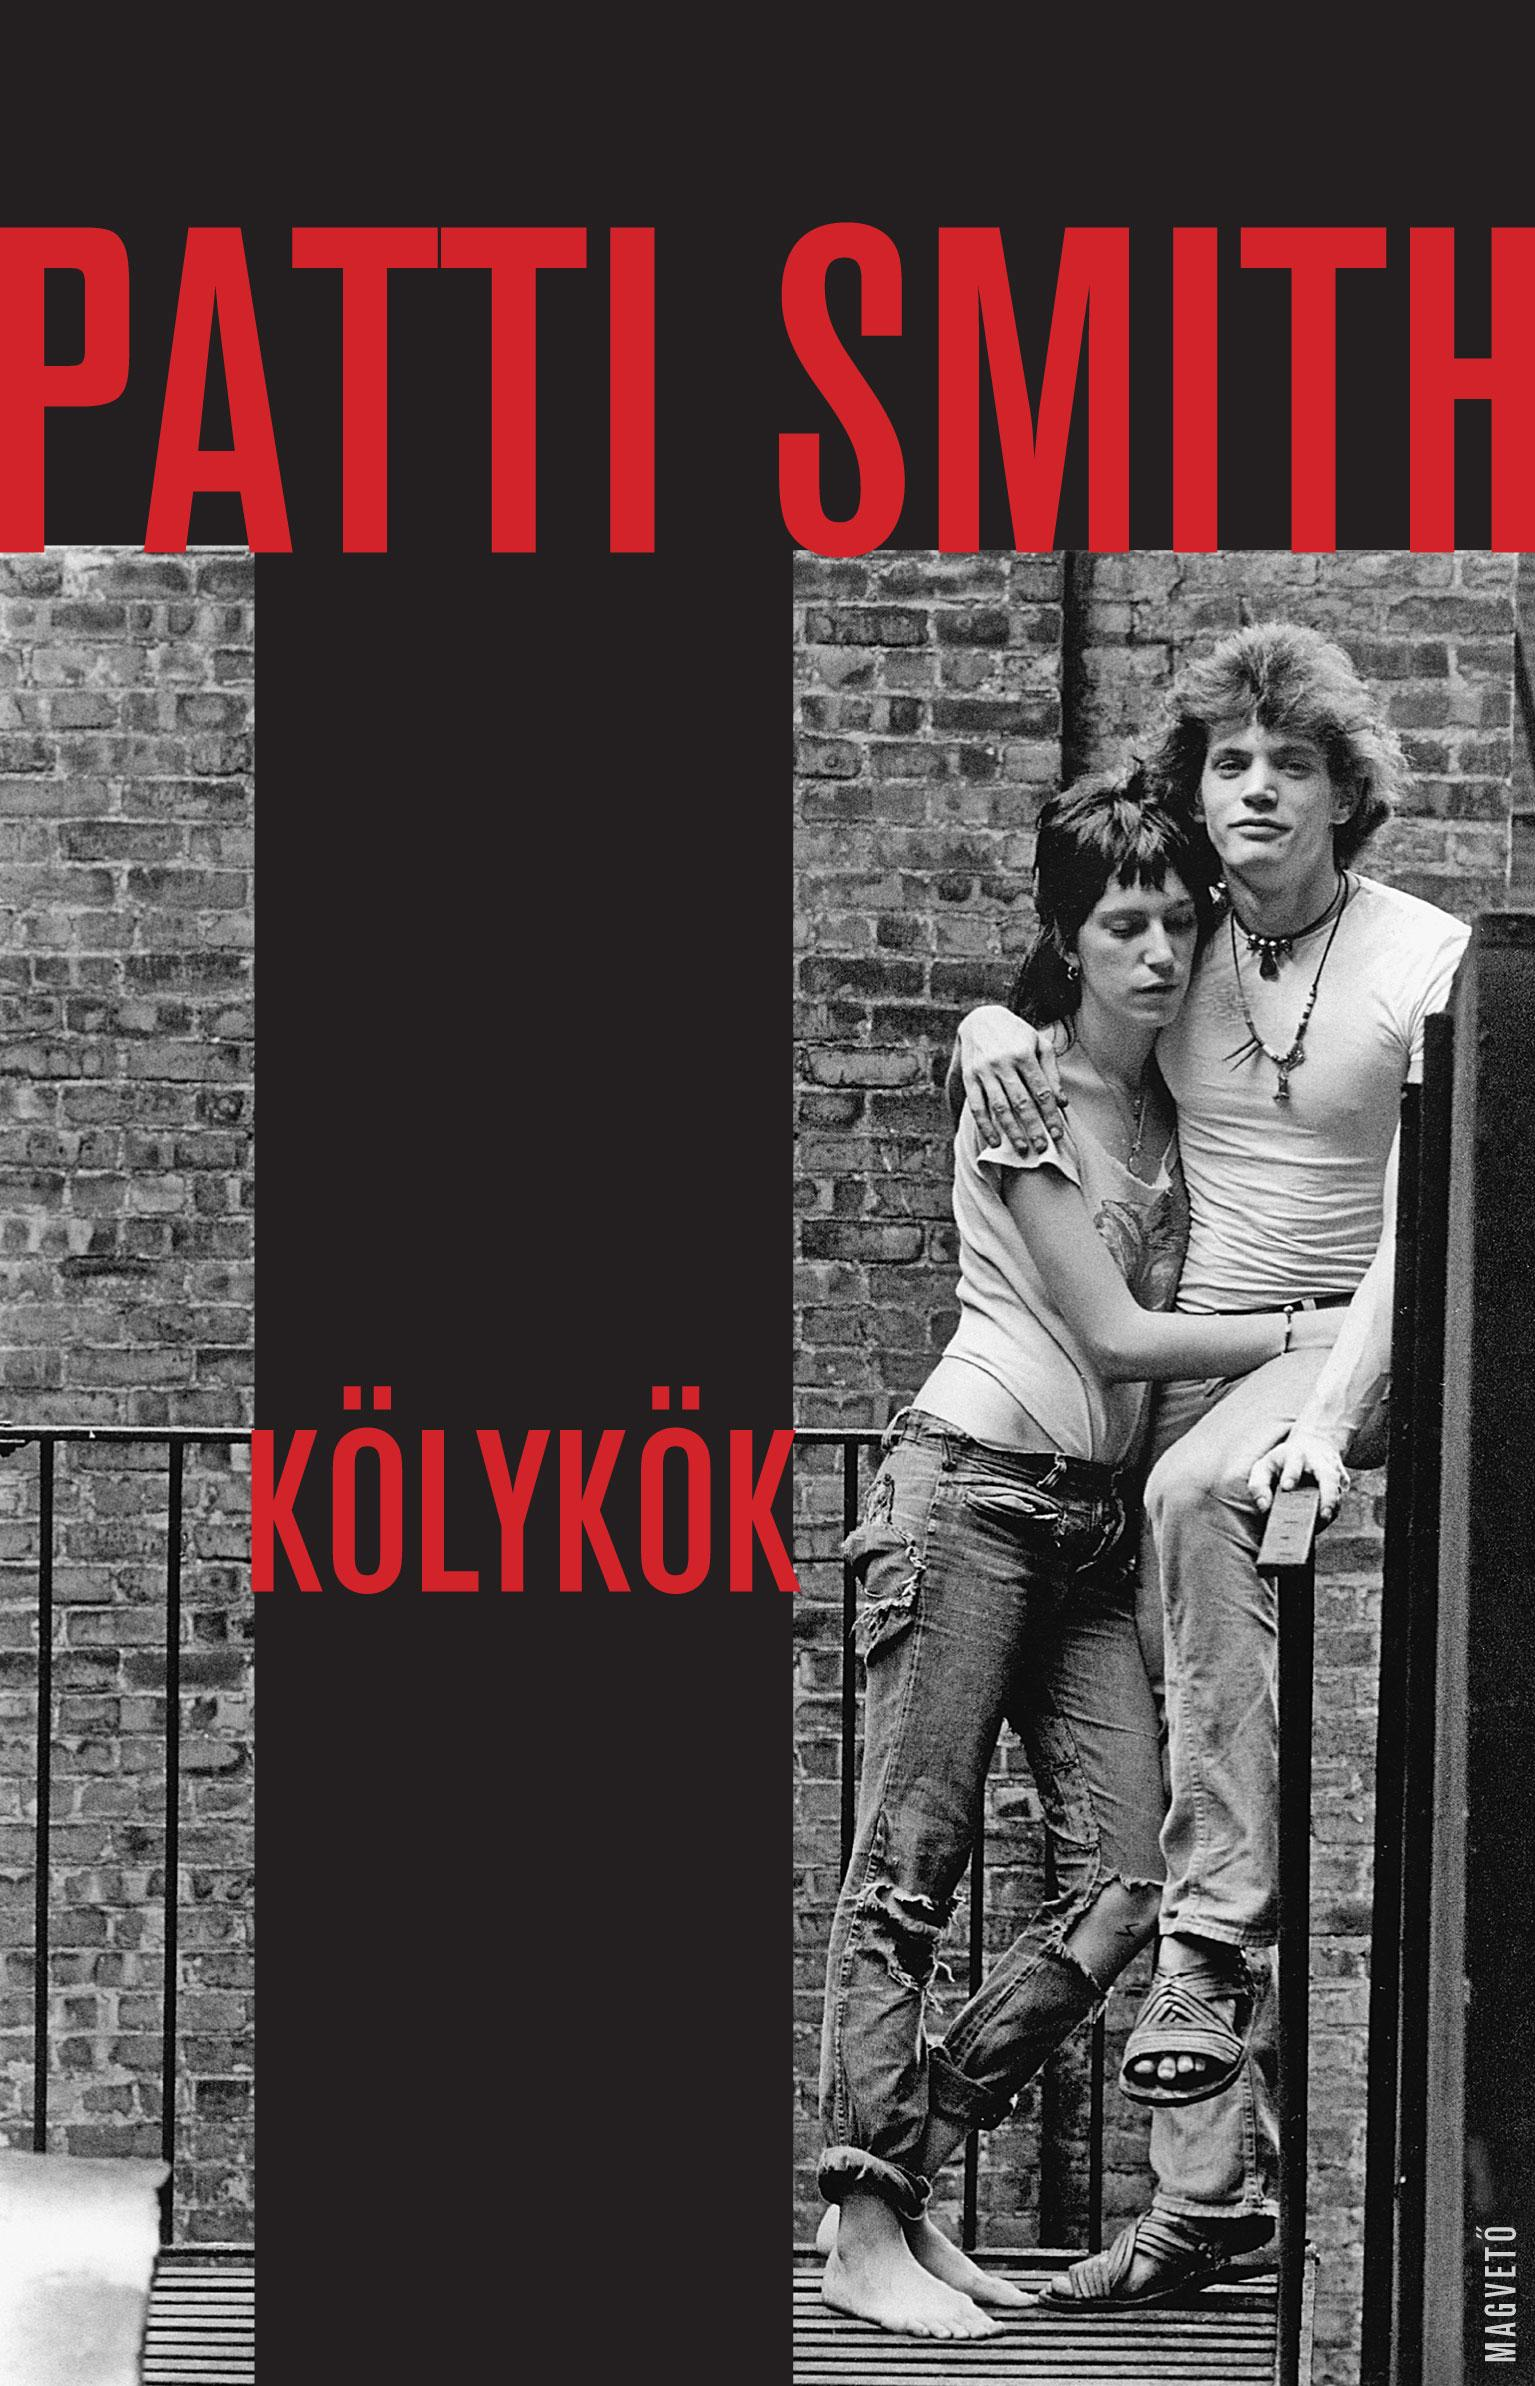 Patti Smith - Kölykök